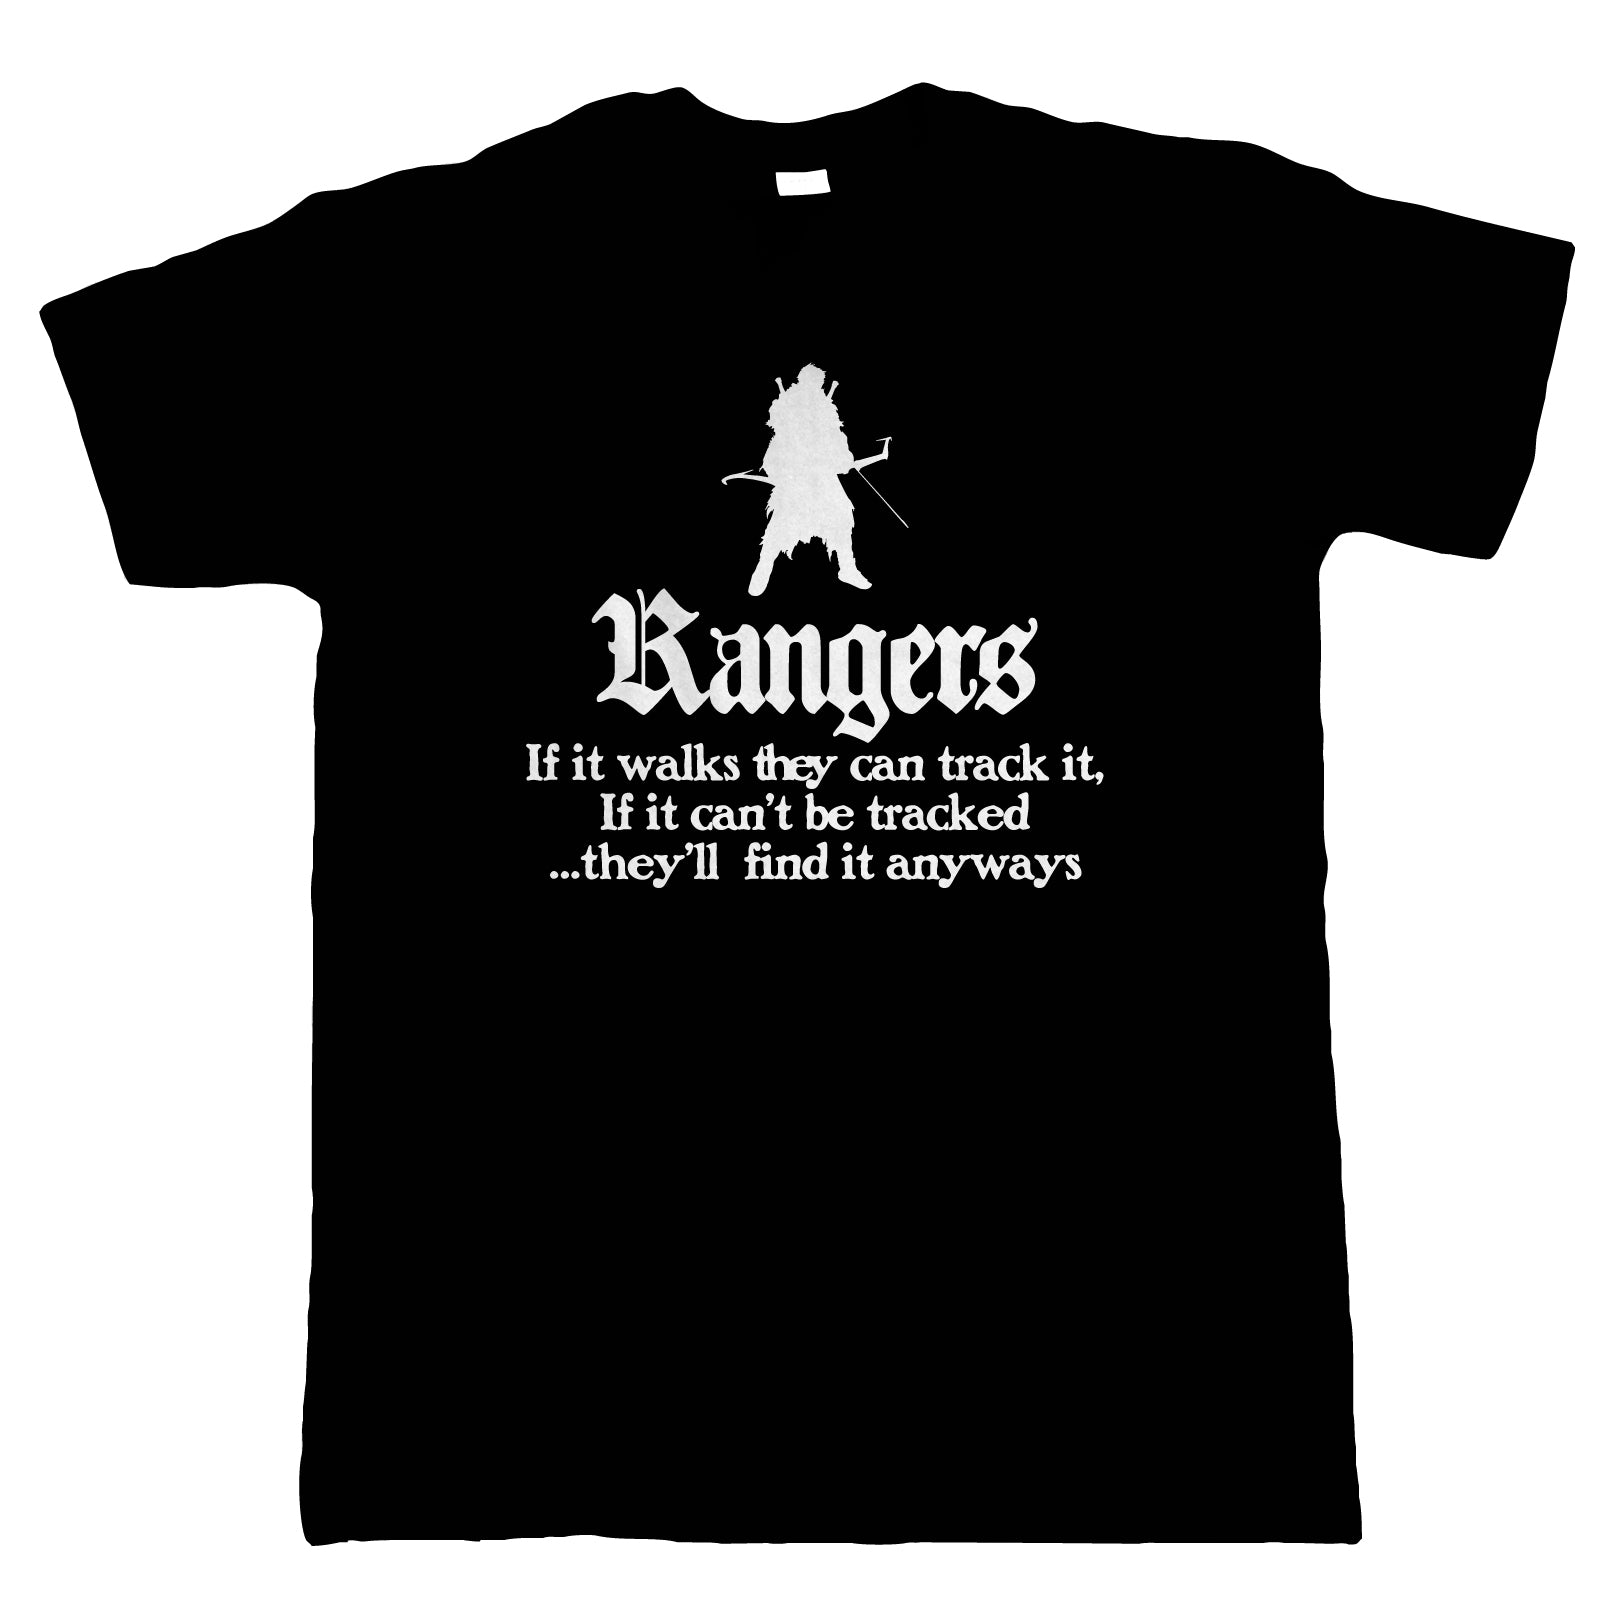 Rangers Mens T-Shirt | Dungeons Dragon D&D DND Pathfinder 3.5 Tarrasque | Crimson Throne Polyhedral D20 Fifth 5th Edition | Geek Gift Him Dad